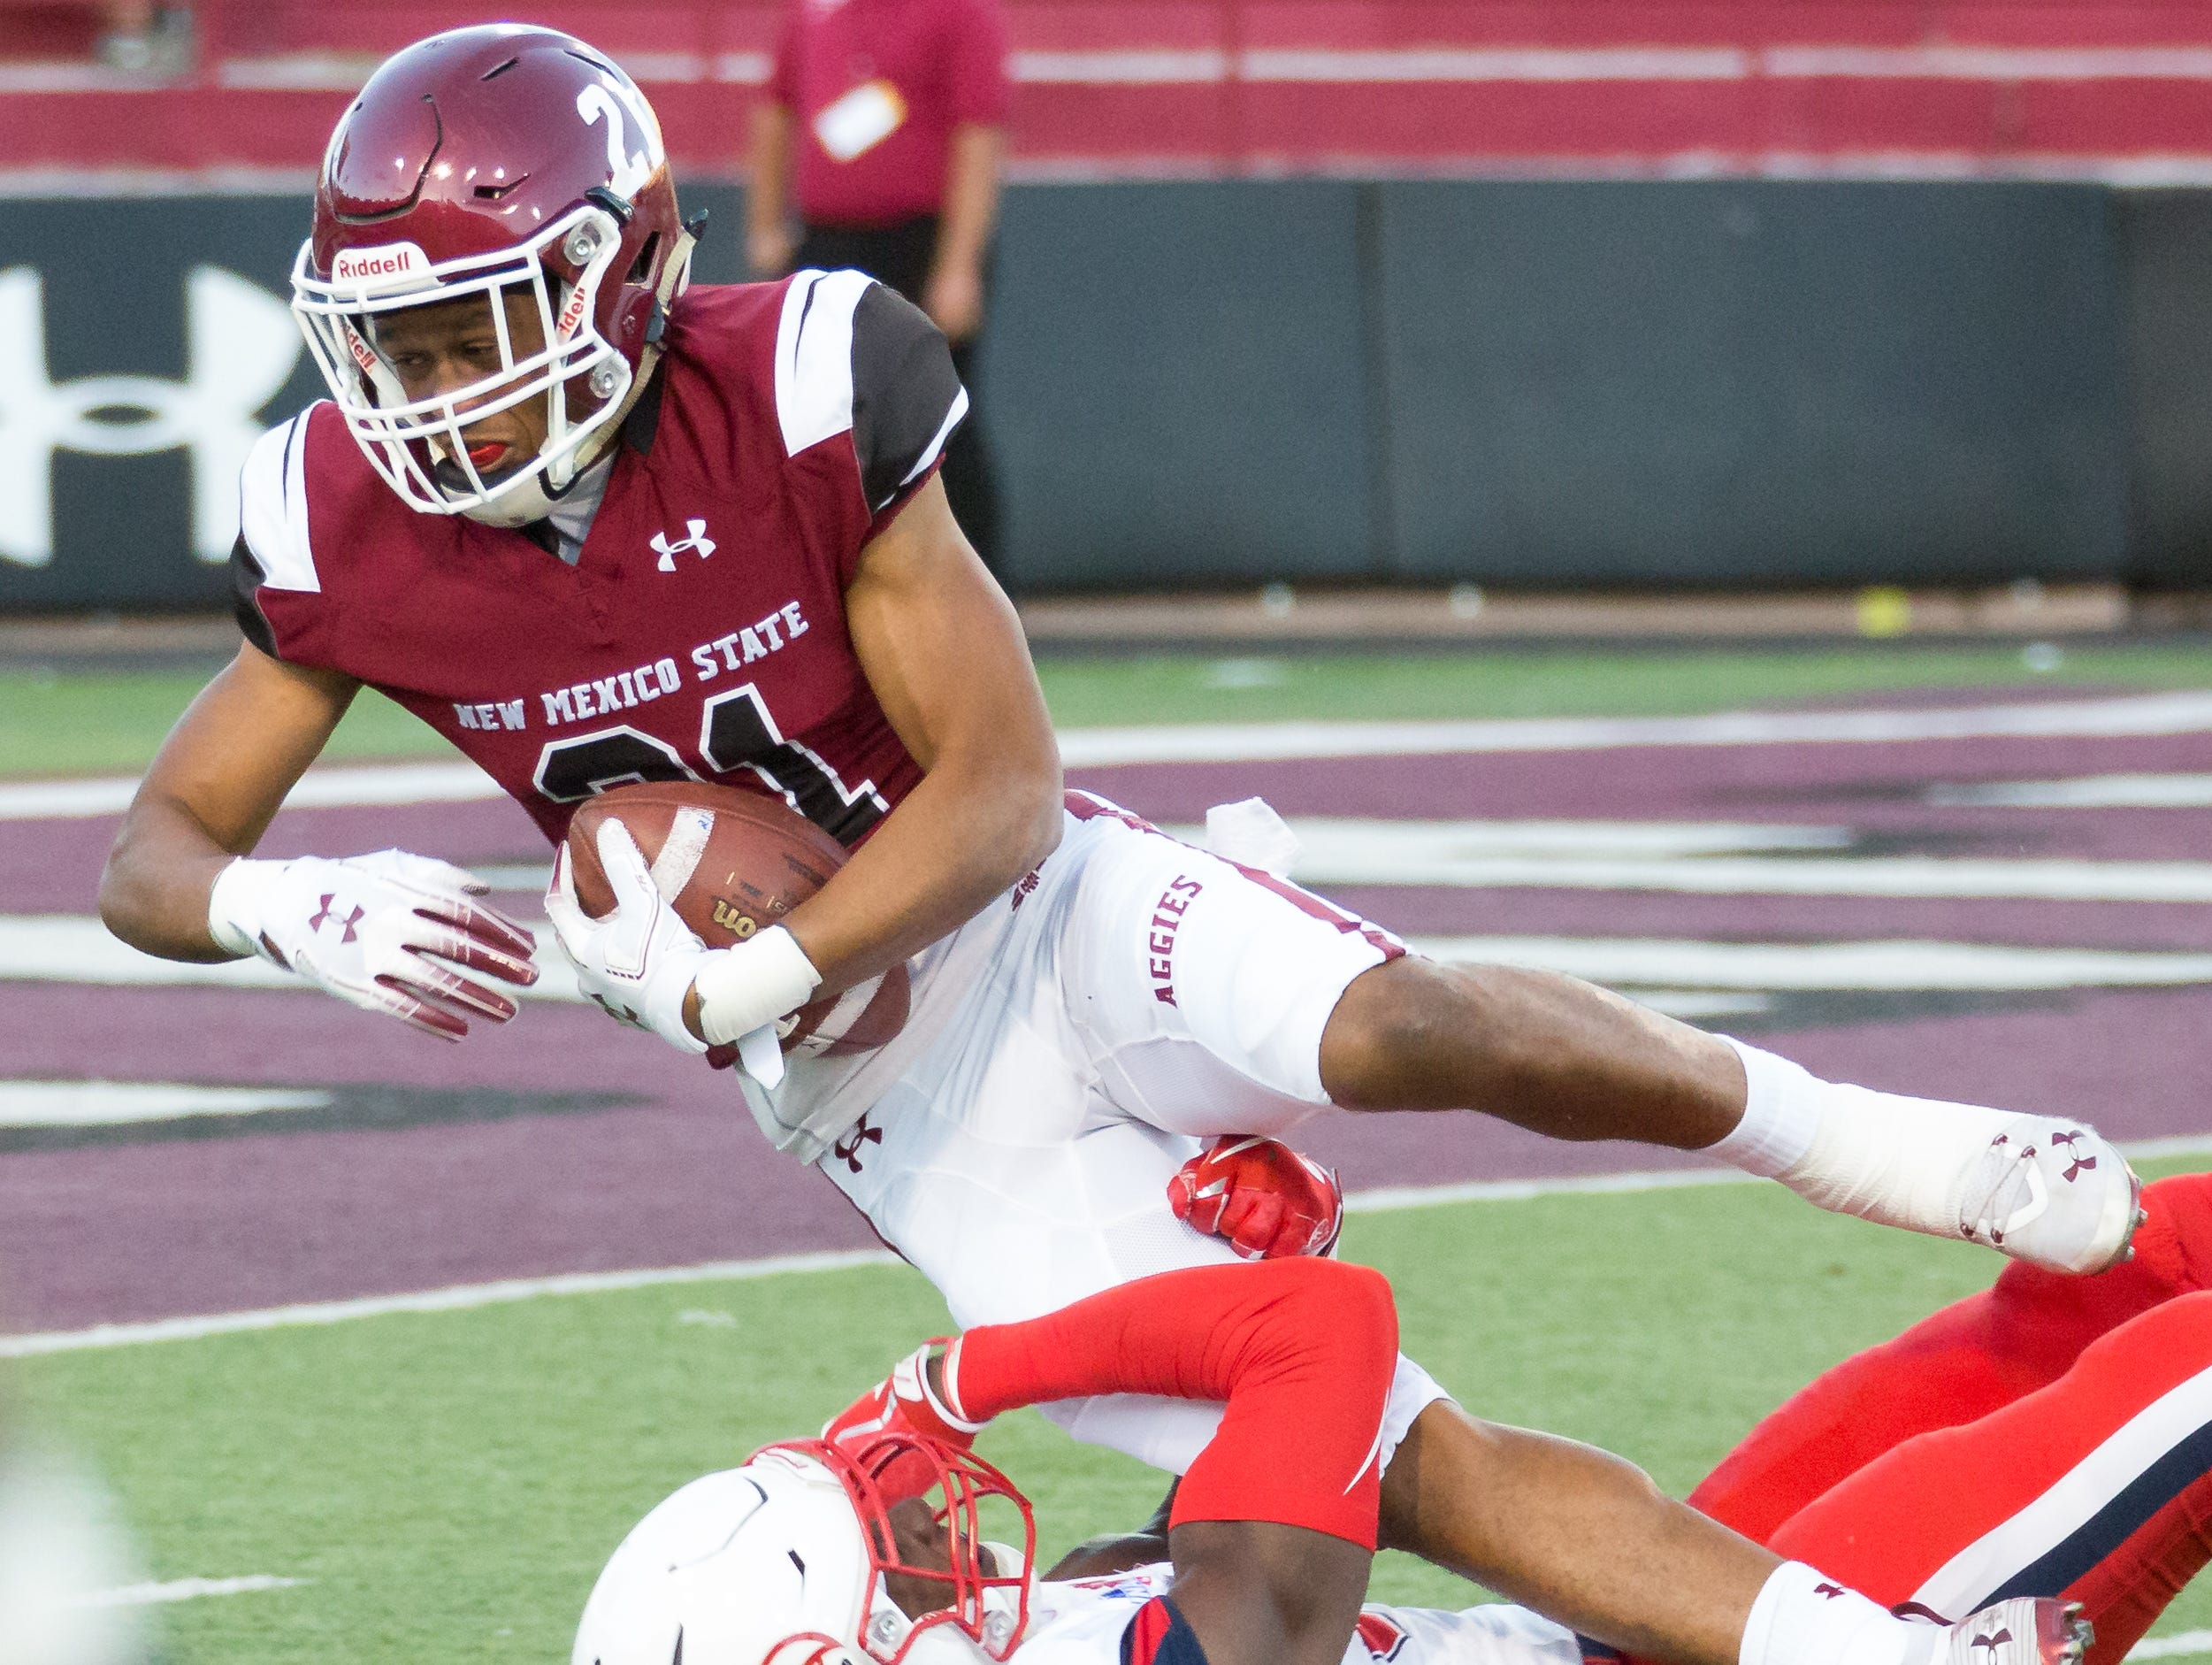 New Mexico State University's Anthony Muse grabs the ball while Liberty's Elijah Benton works on bringing him down on Saturday, Oct. 6, 2018 at the Aggie Memorial Stadium.